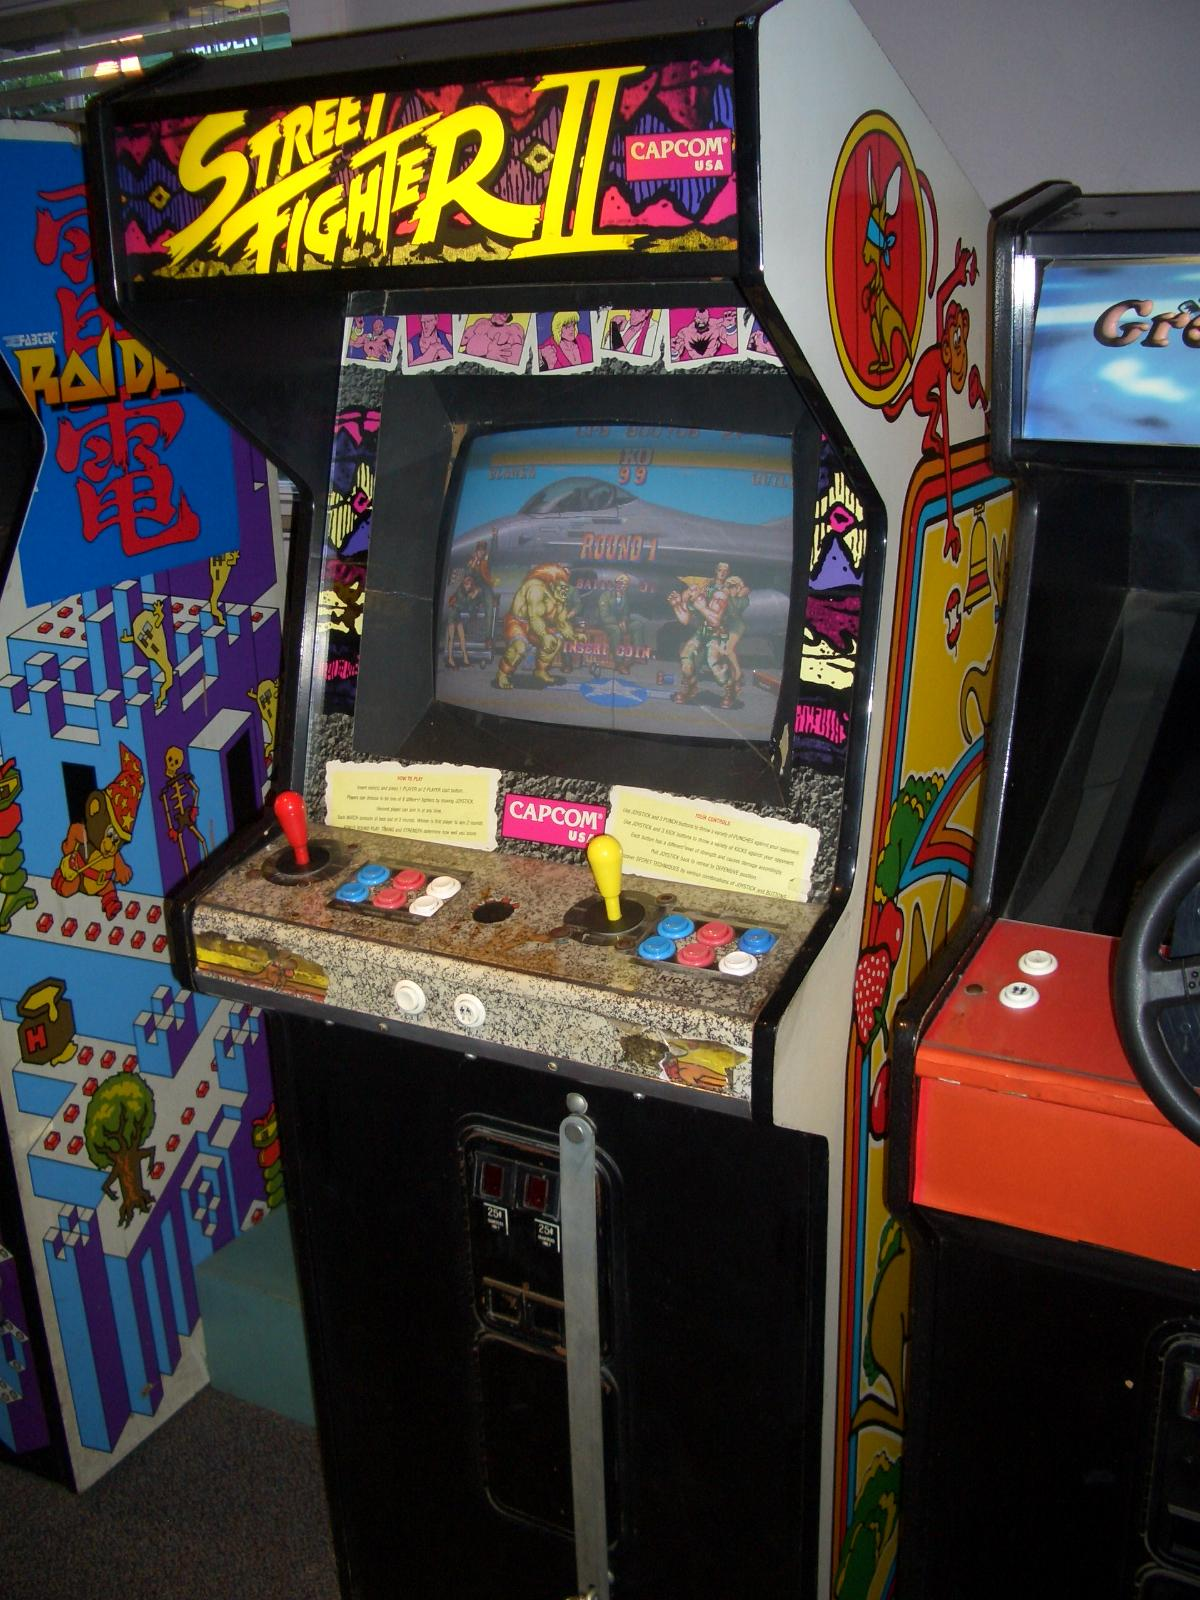 street fighter 2 hyper fighting arcade machine